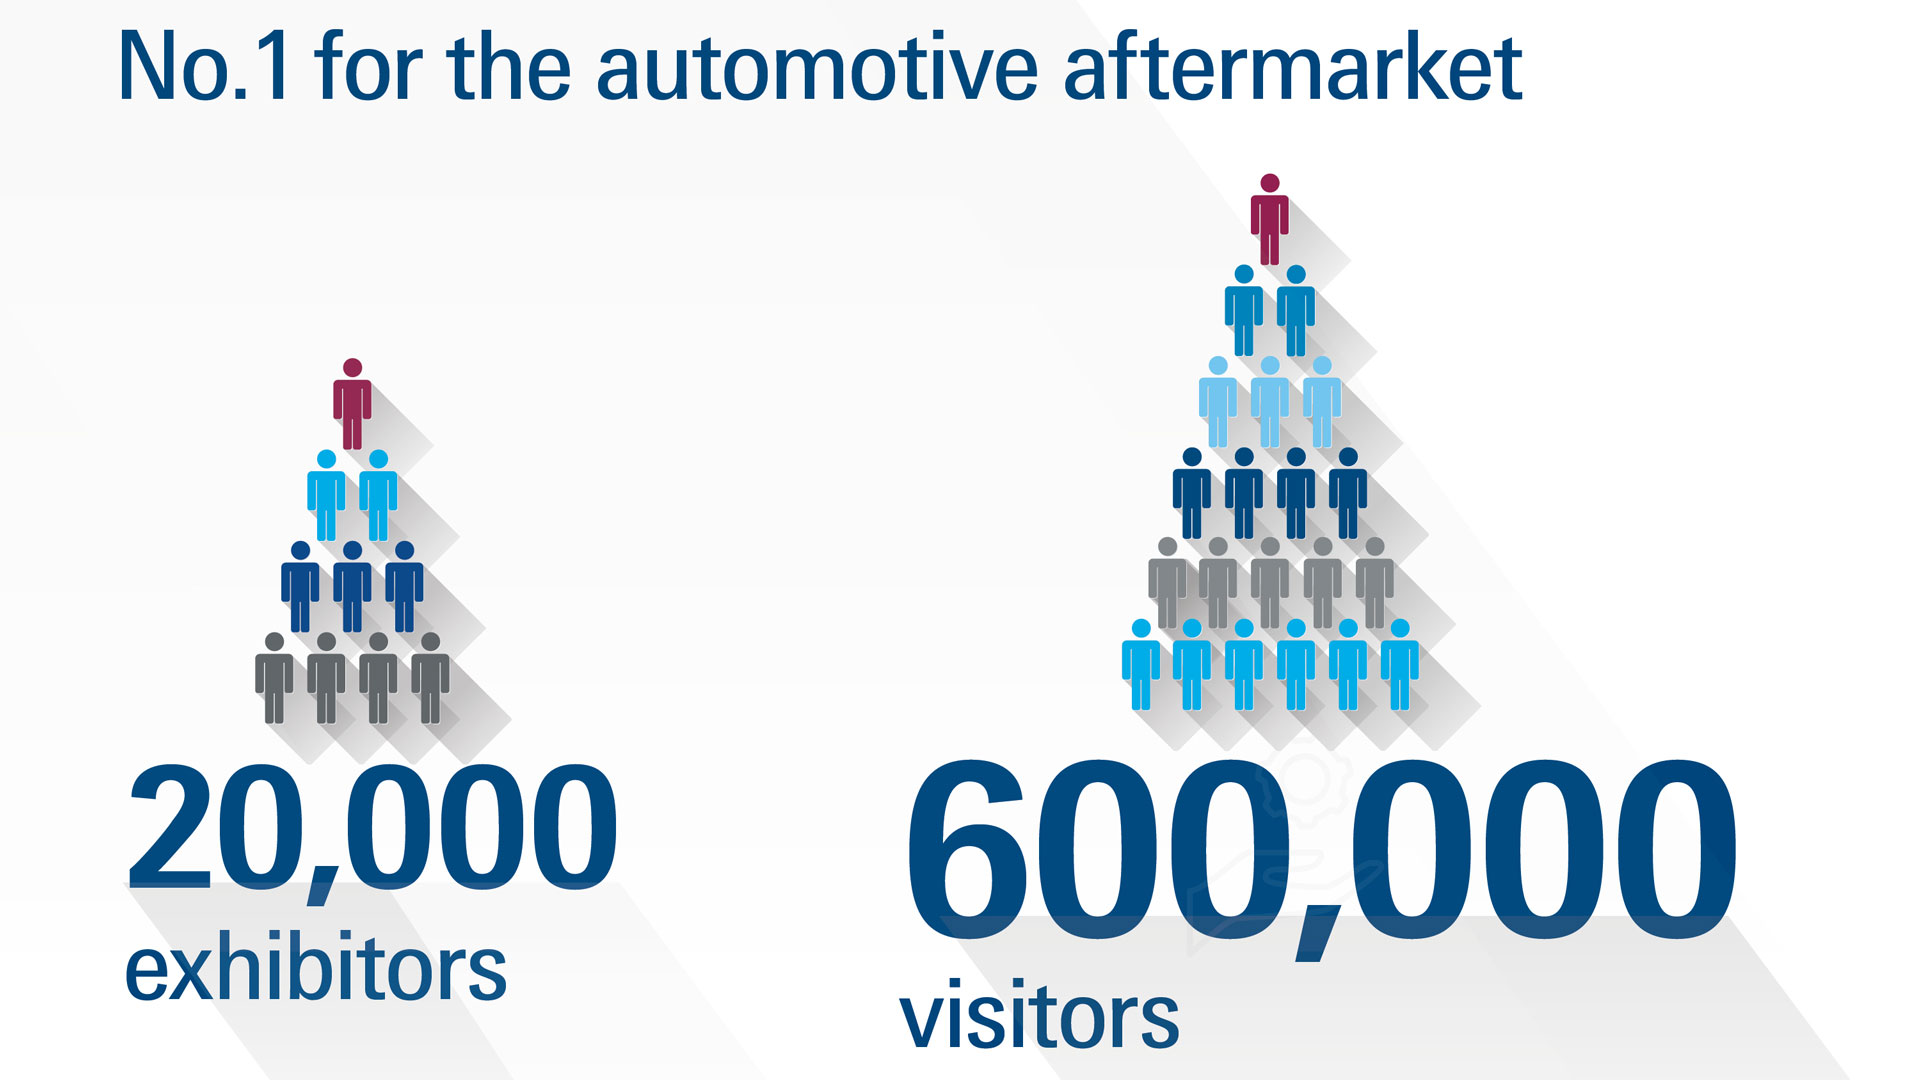 Automechanika - World's leading trade fair for the automotive